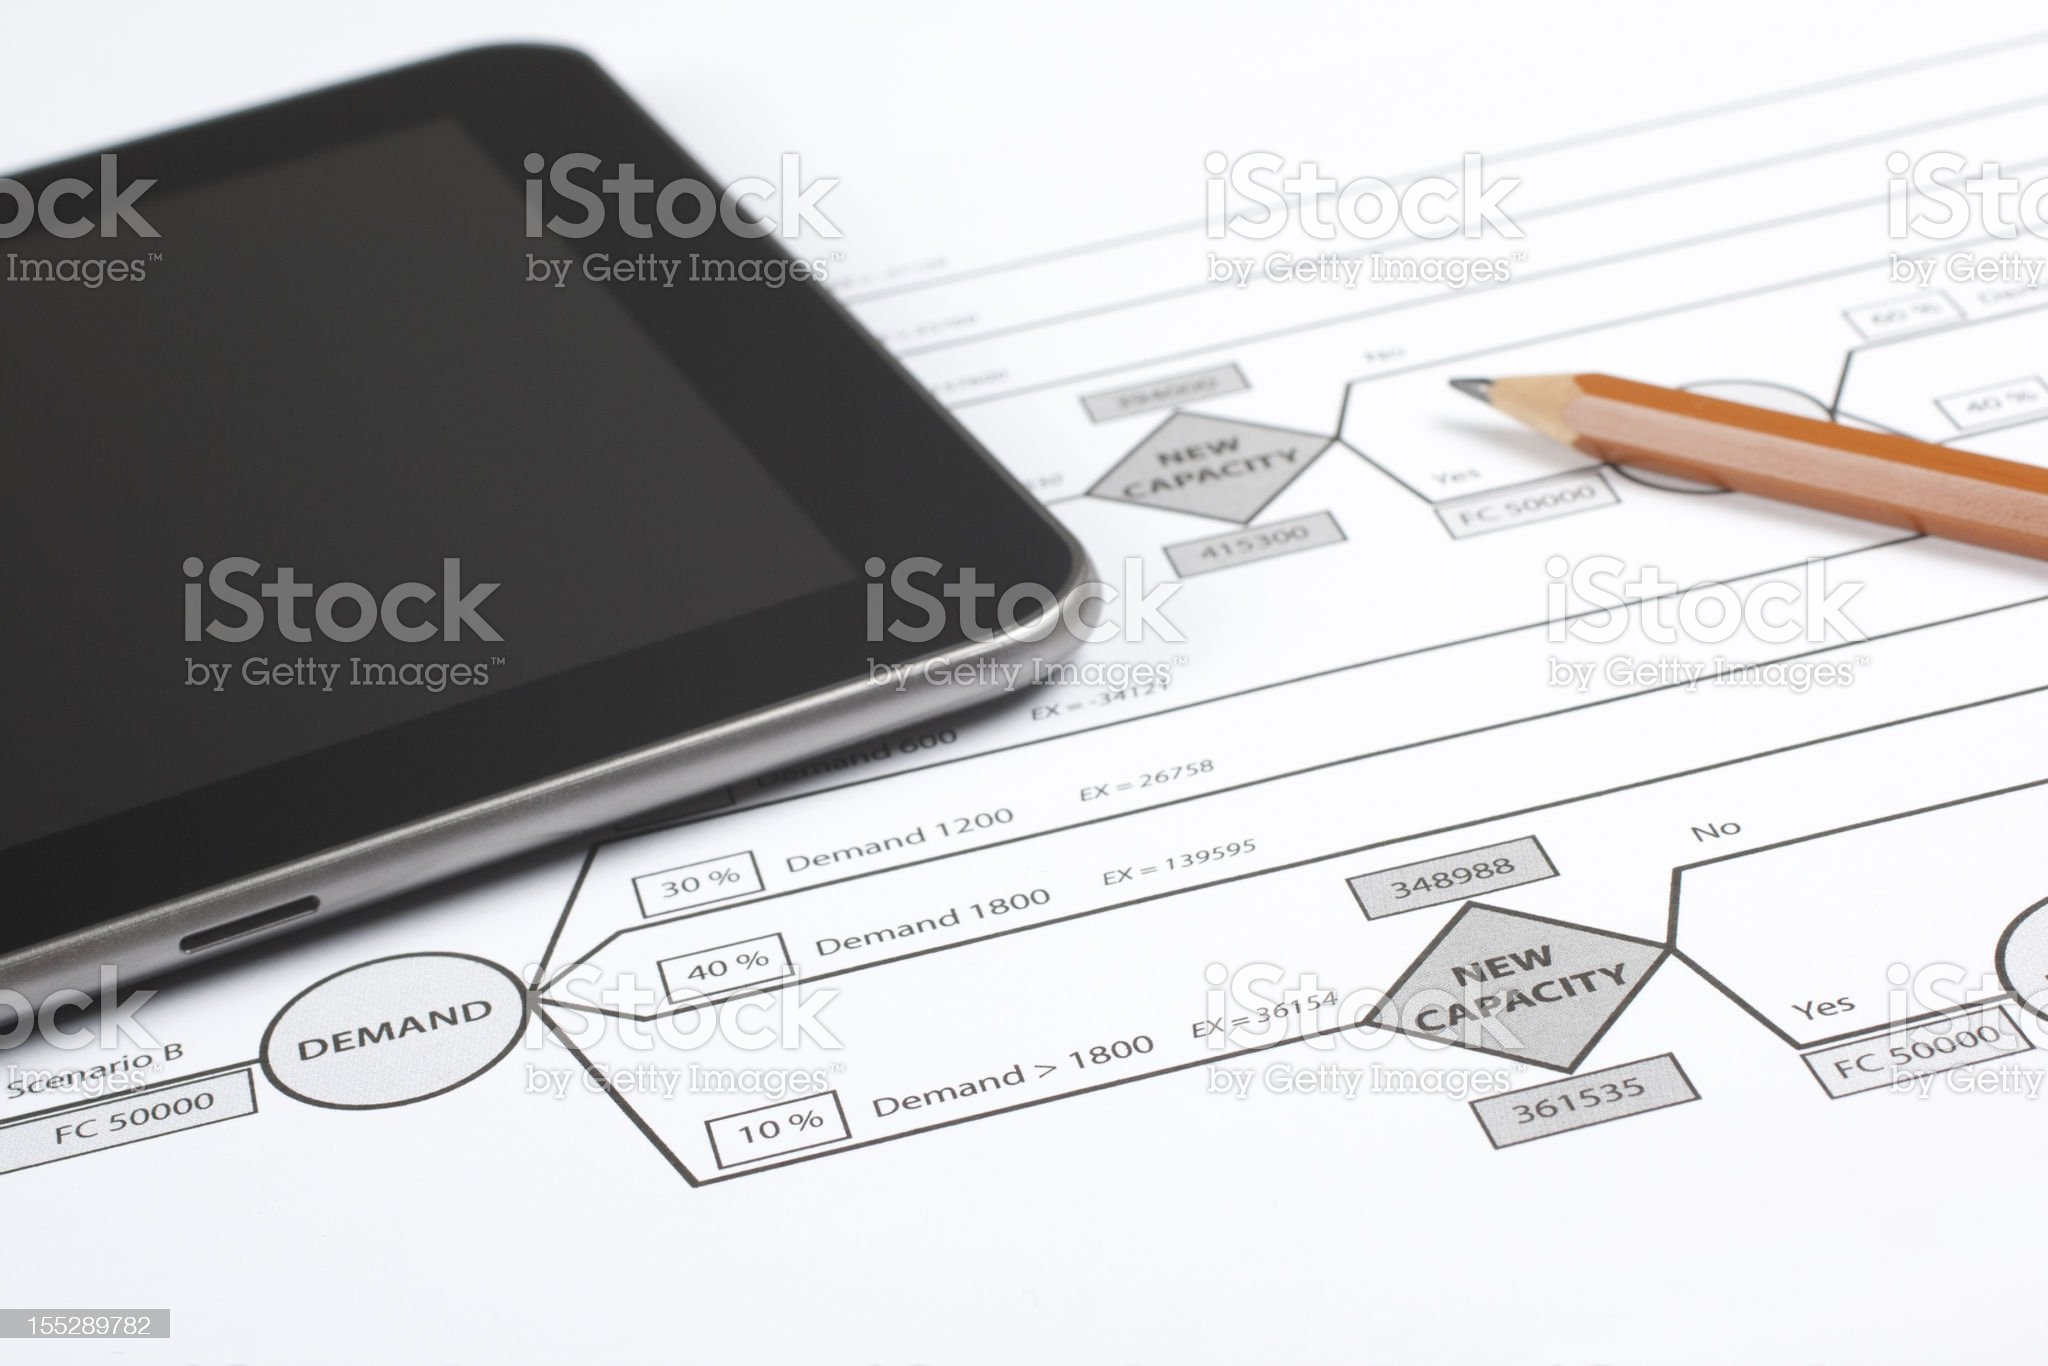 Decision tree (management) royalty-free stock photo